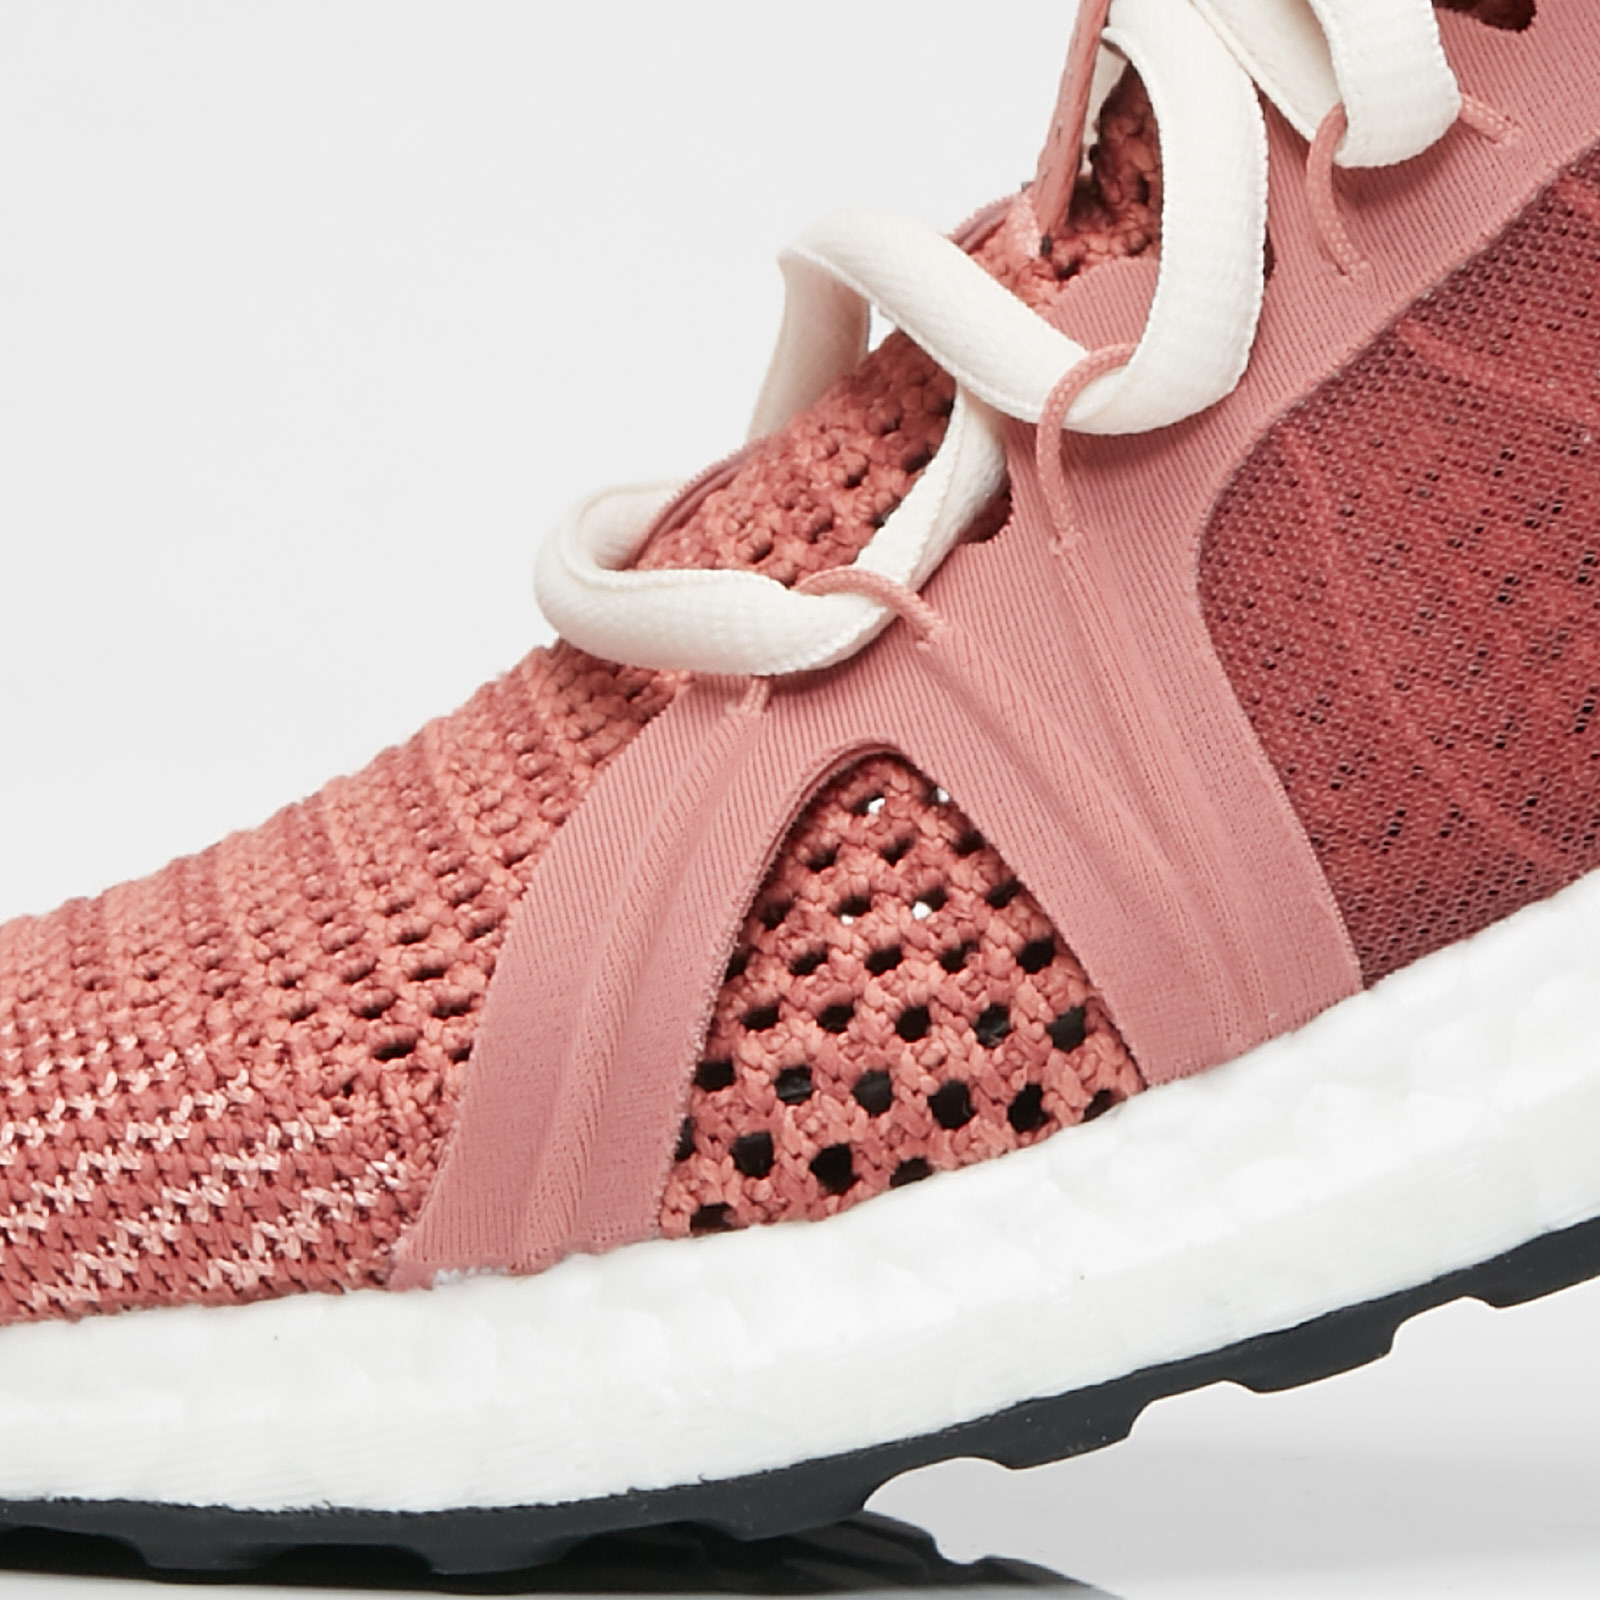 bf5c41ba9 adidas by Stella McCartney UltraBOOST - 6. Close